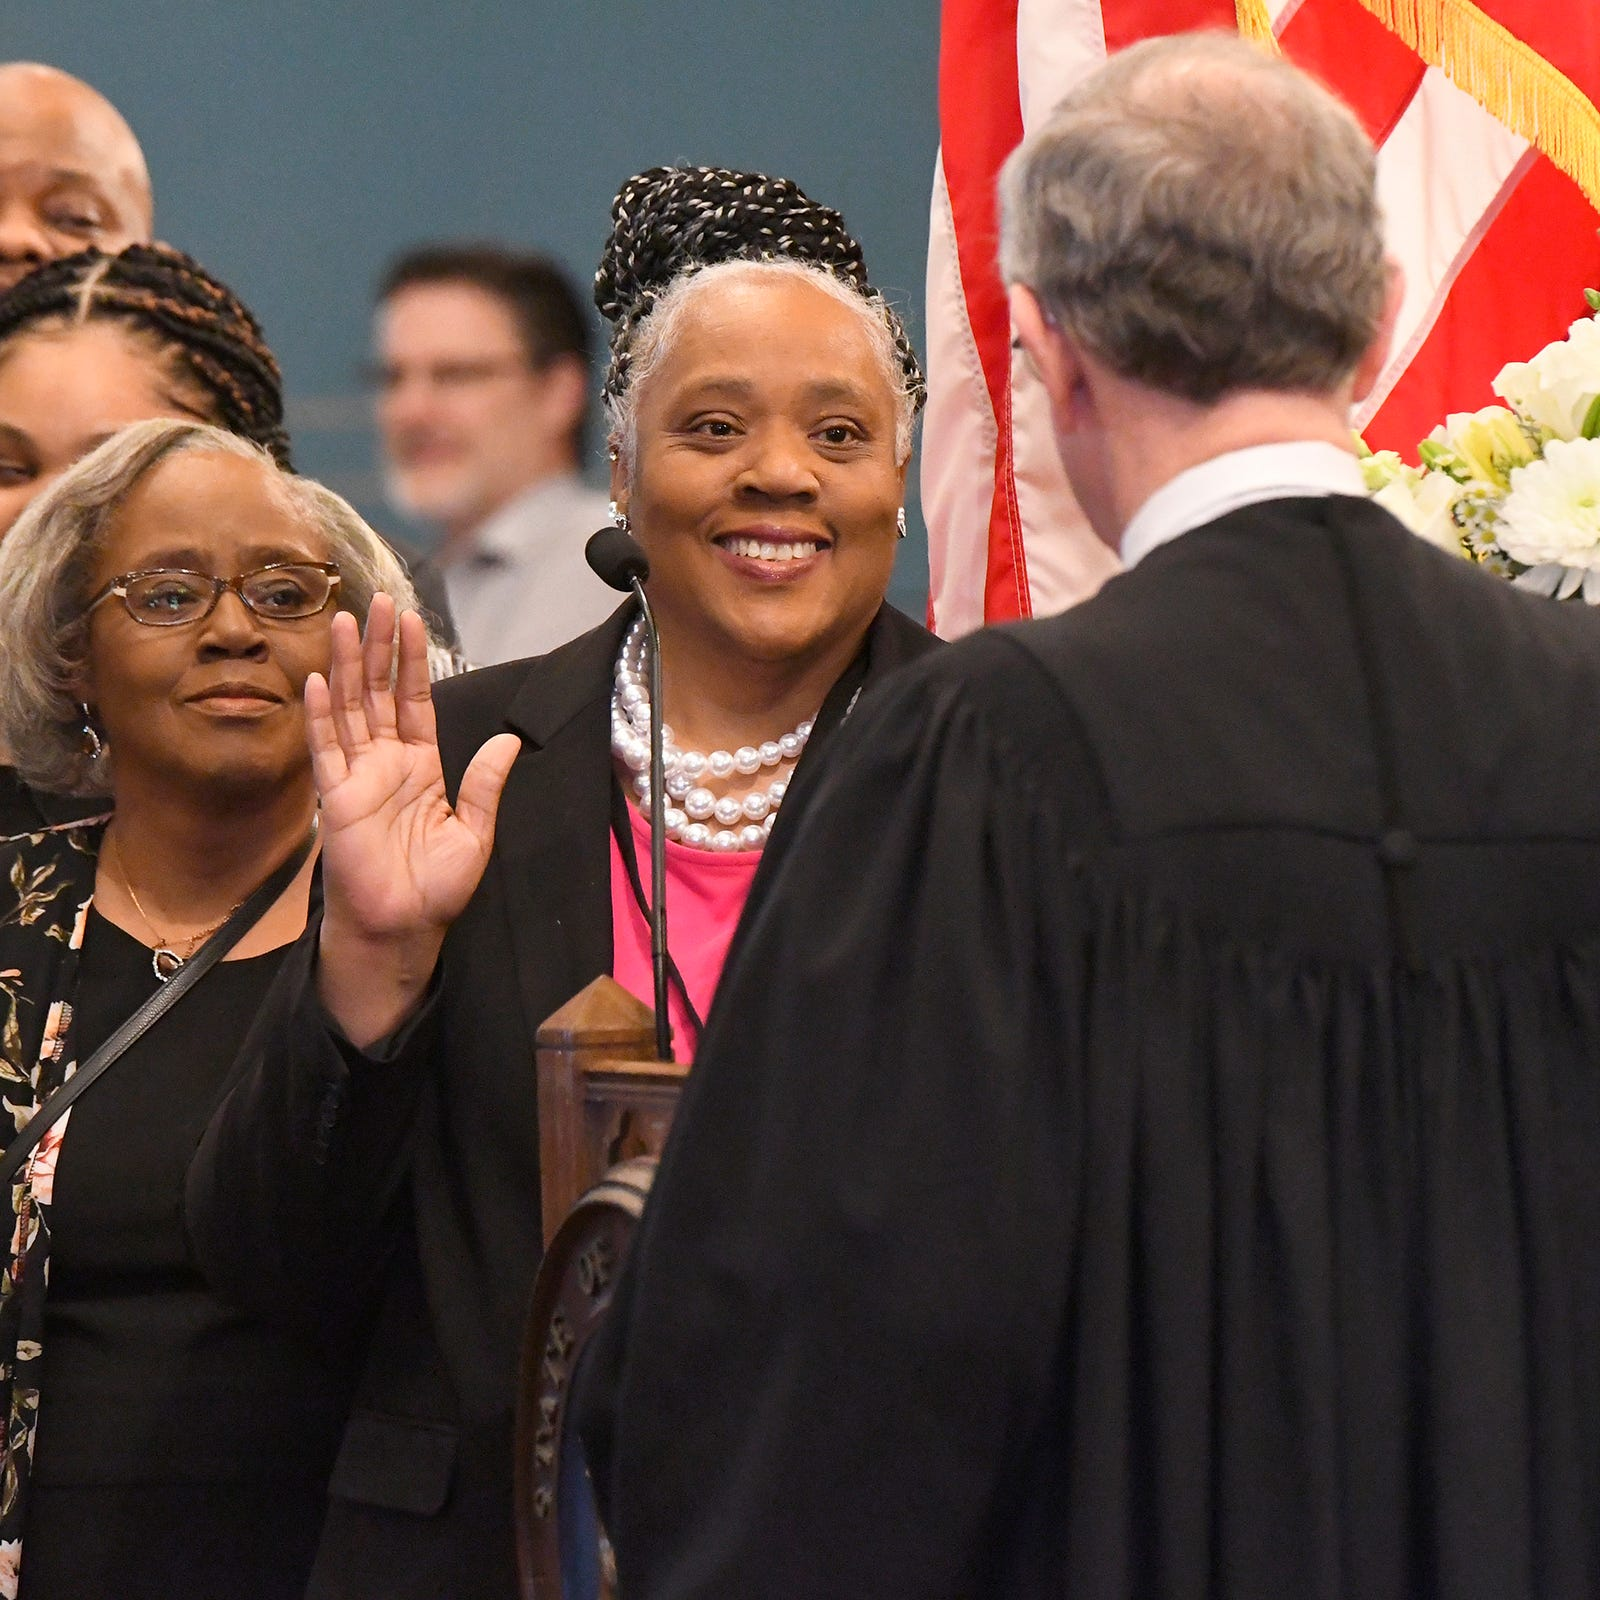 New State Sen. Betty Jean Alexander, of Detroit's 5th district, is sworn in by Chief Justice Stephen Markman during opening ceremonies for the 100th Legislature in Lansing on January 9.